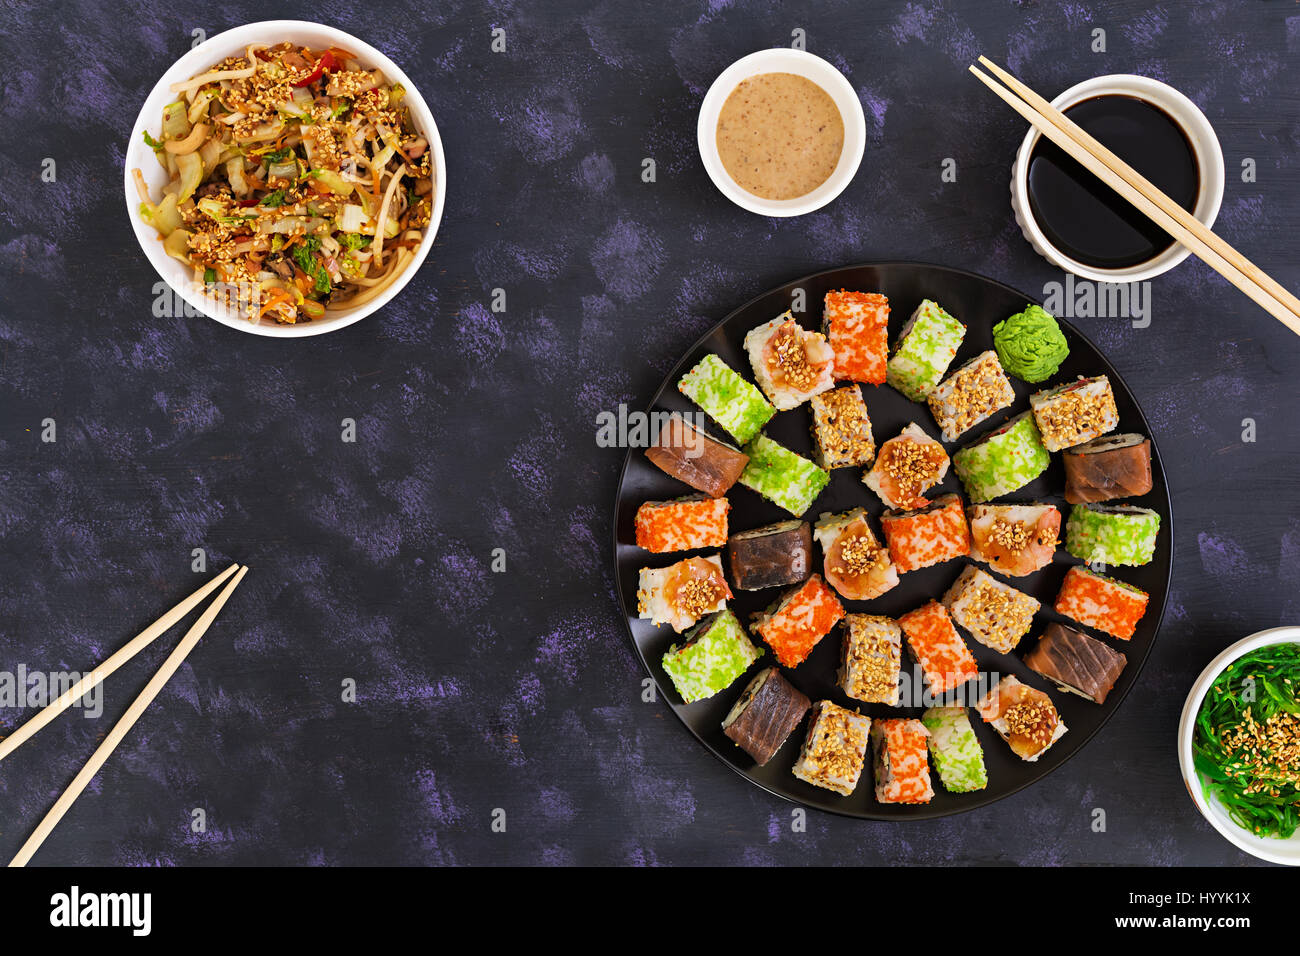 Sushi roll on dark background. Top view - Stock Image